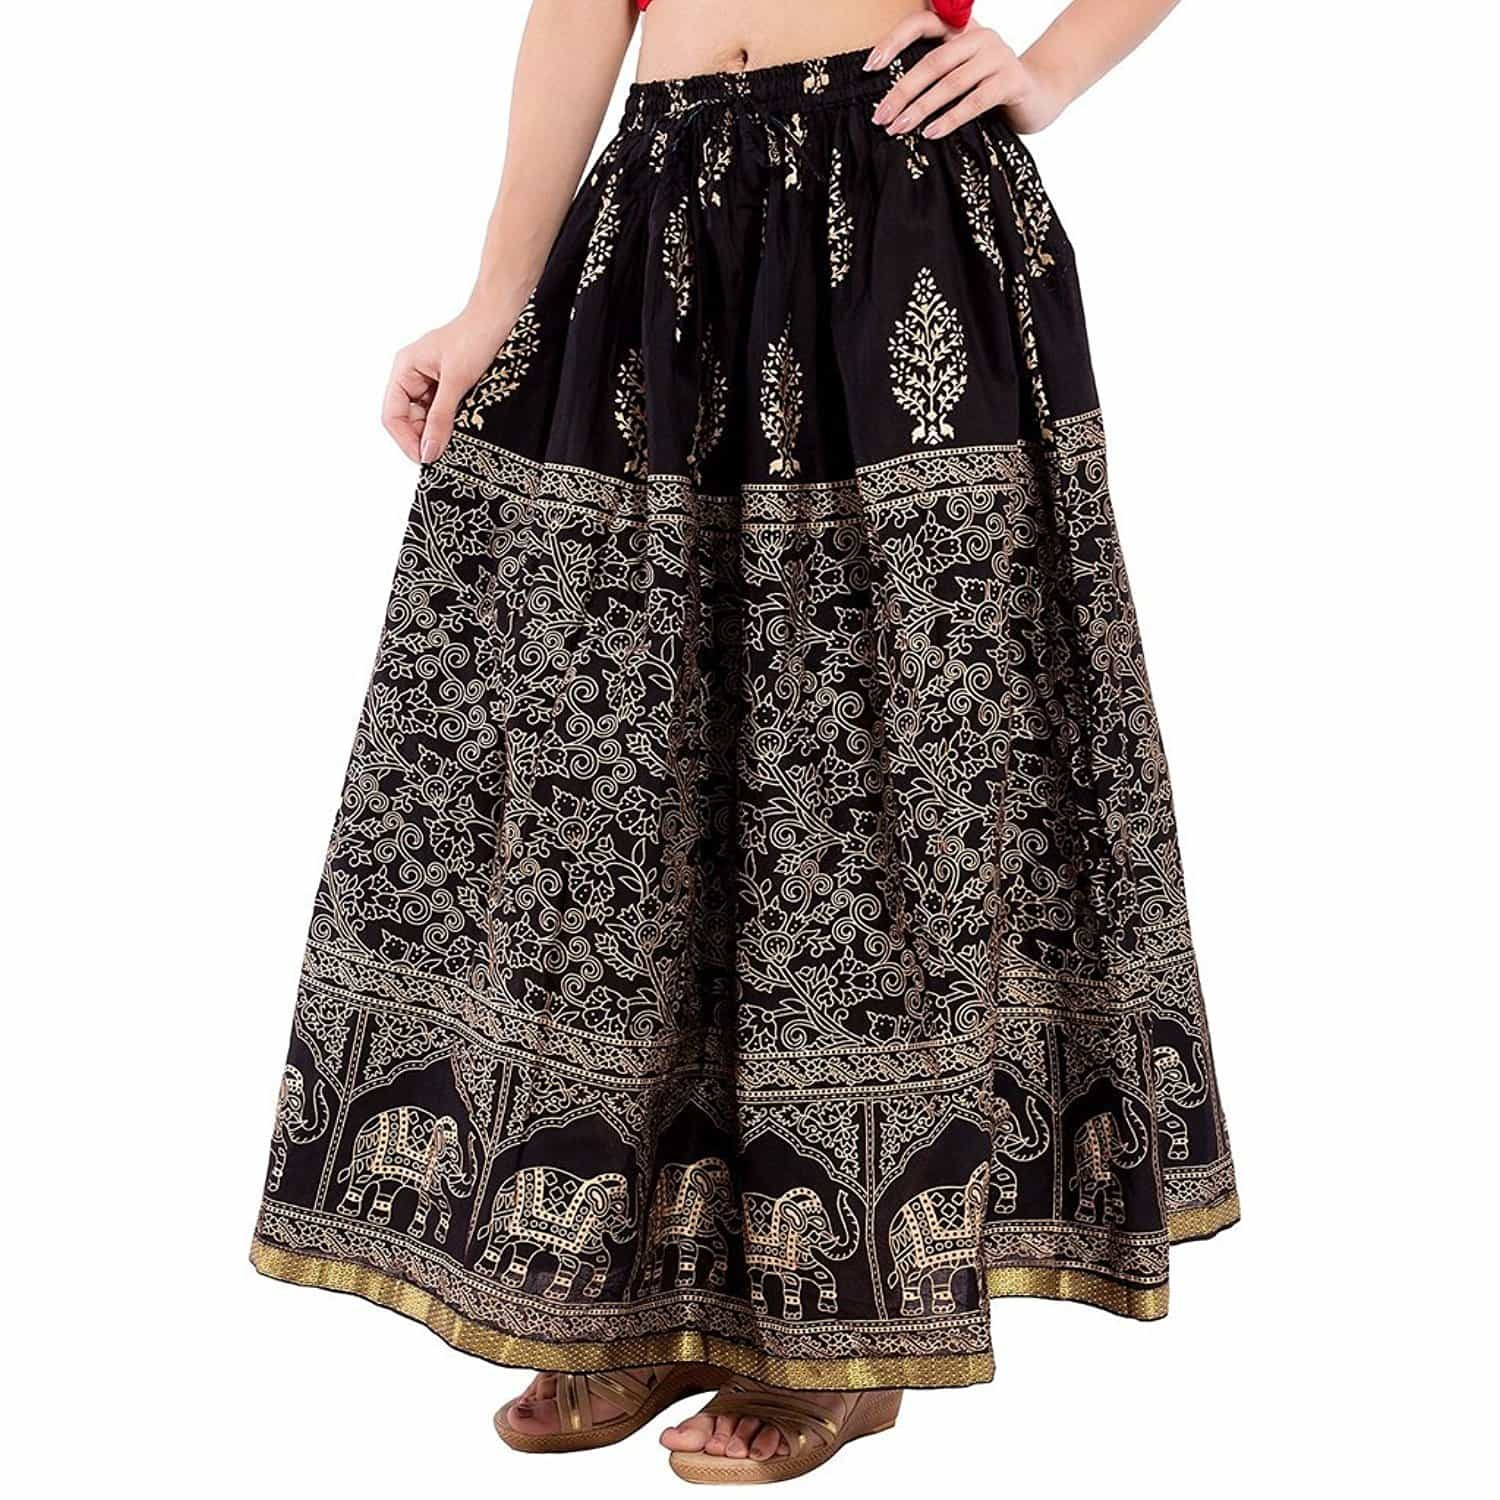 Stylish Ethnic Wear For Navratri